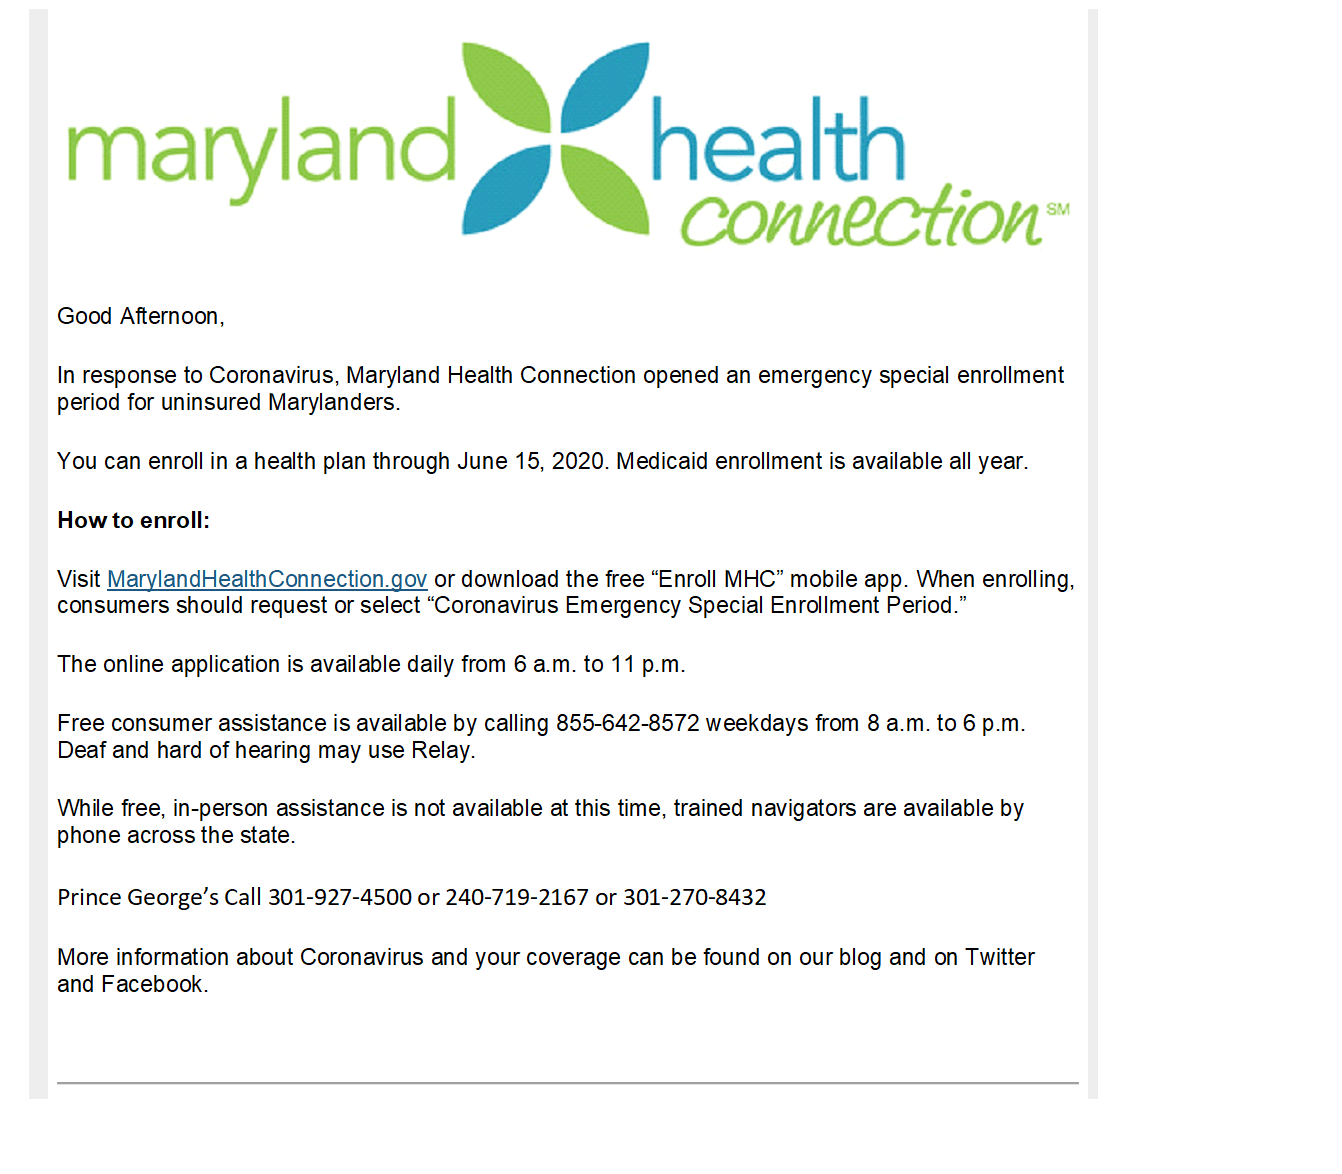 MD HEALTH CONNECT